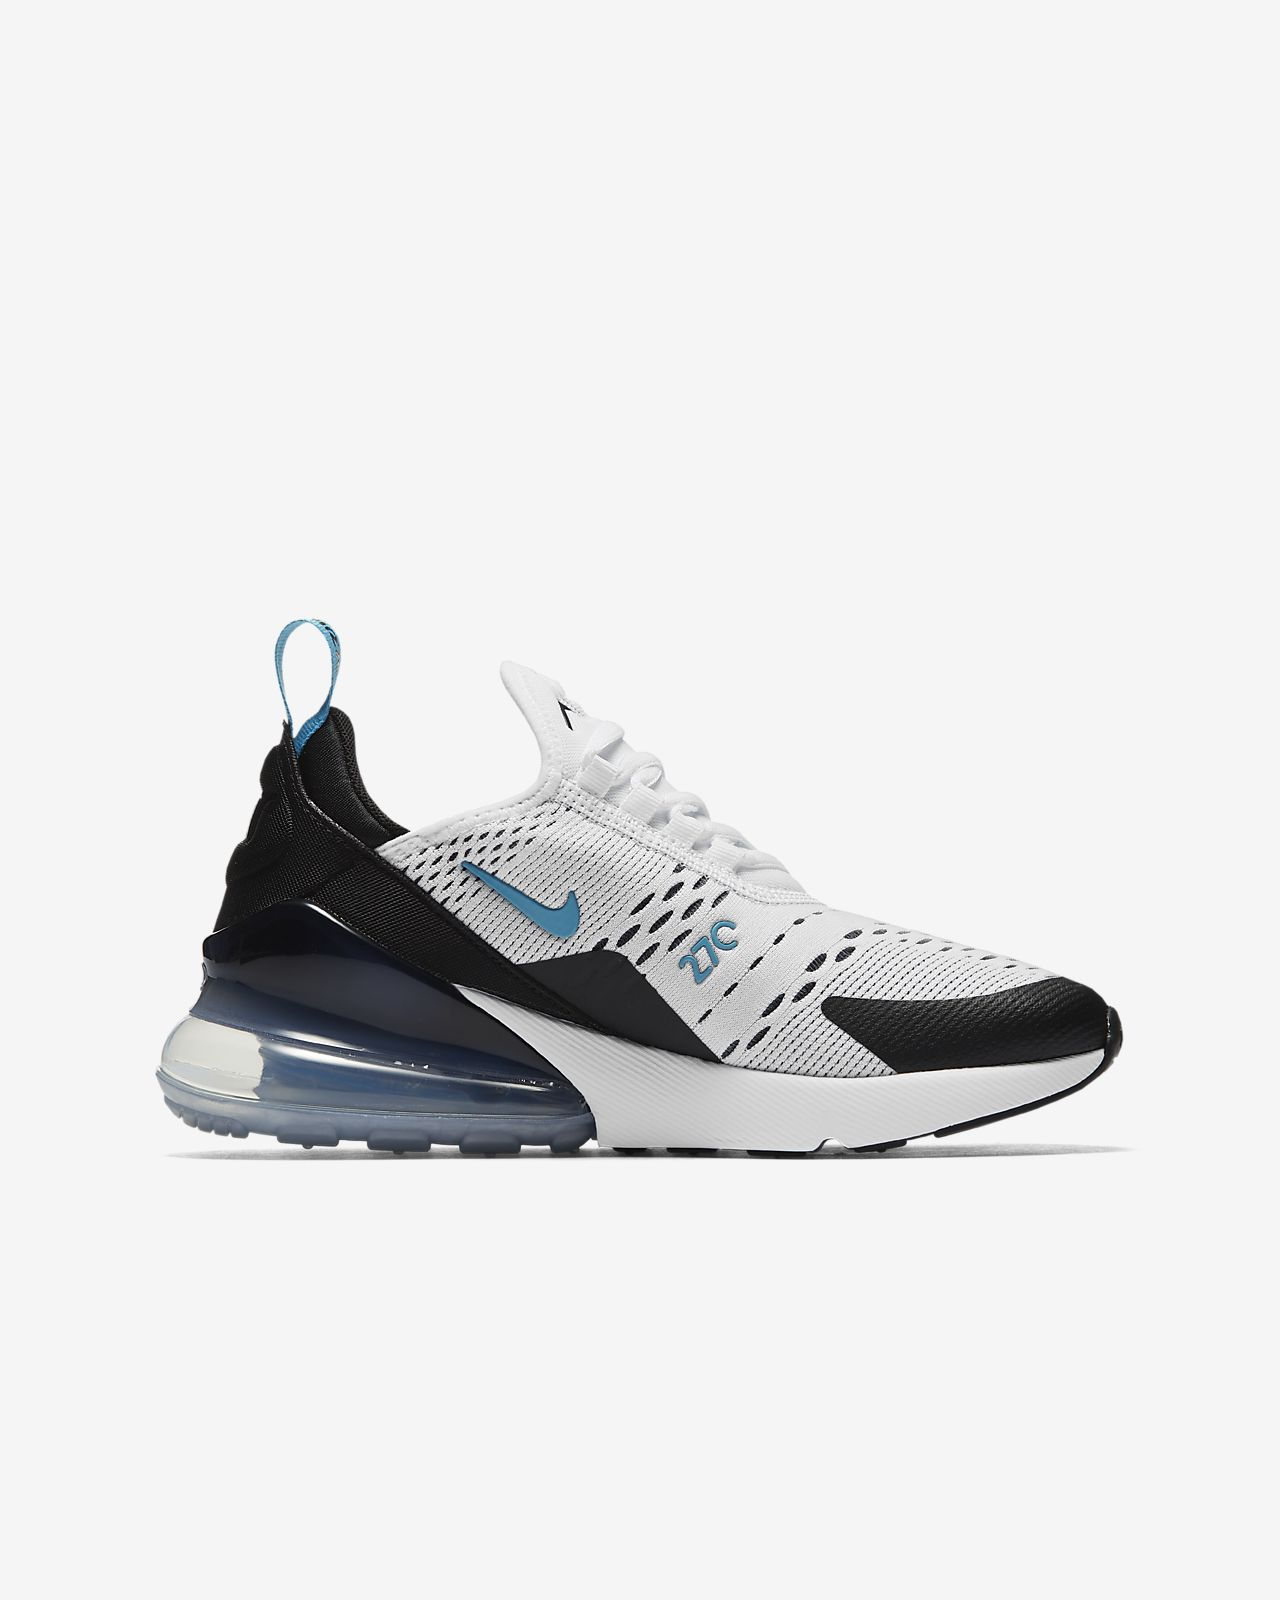 Dusty CactusPure PlatinumHyper Turquoise) Nike Air Max